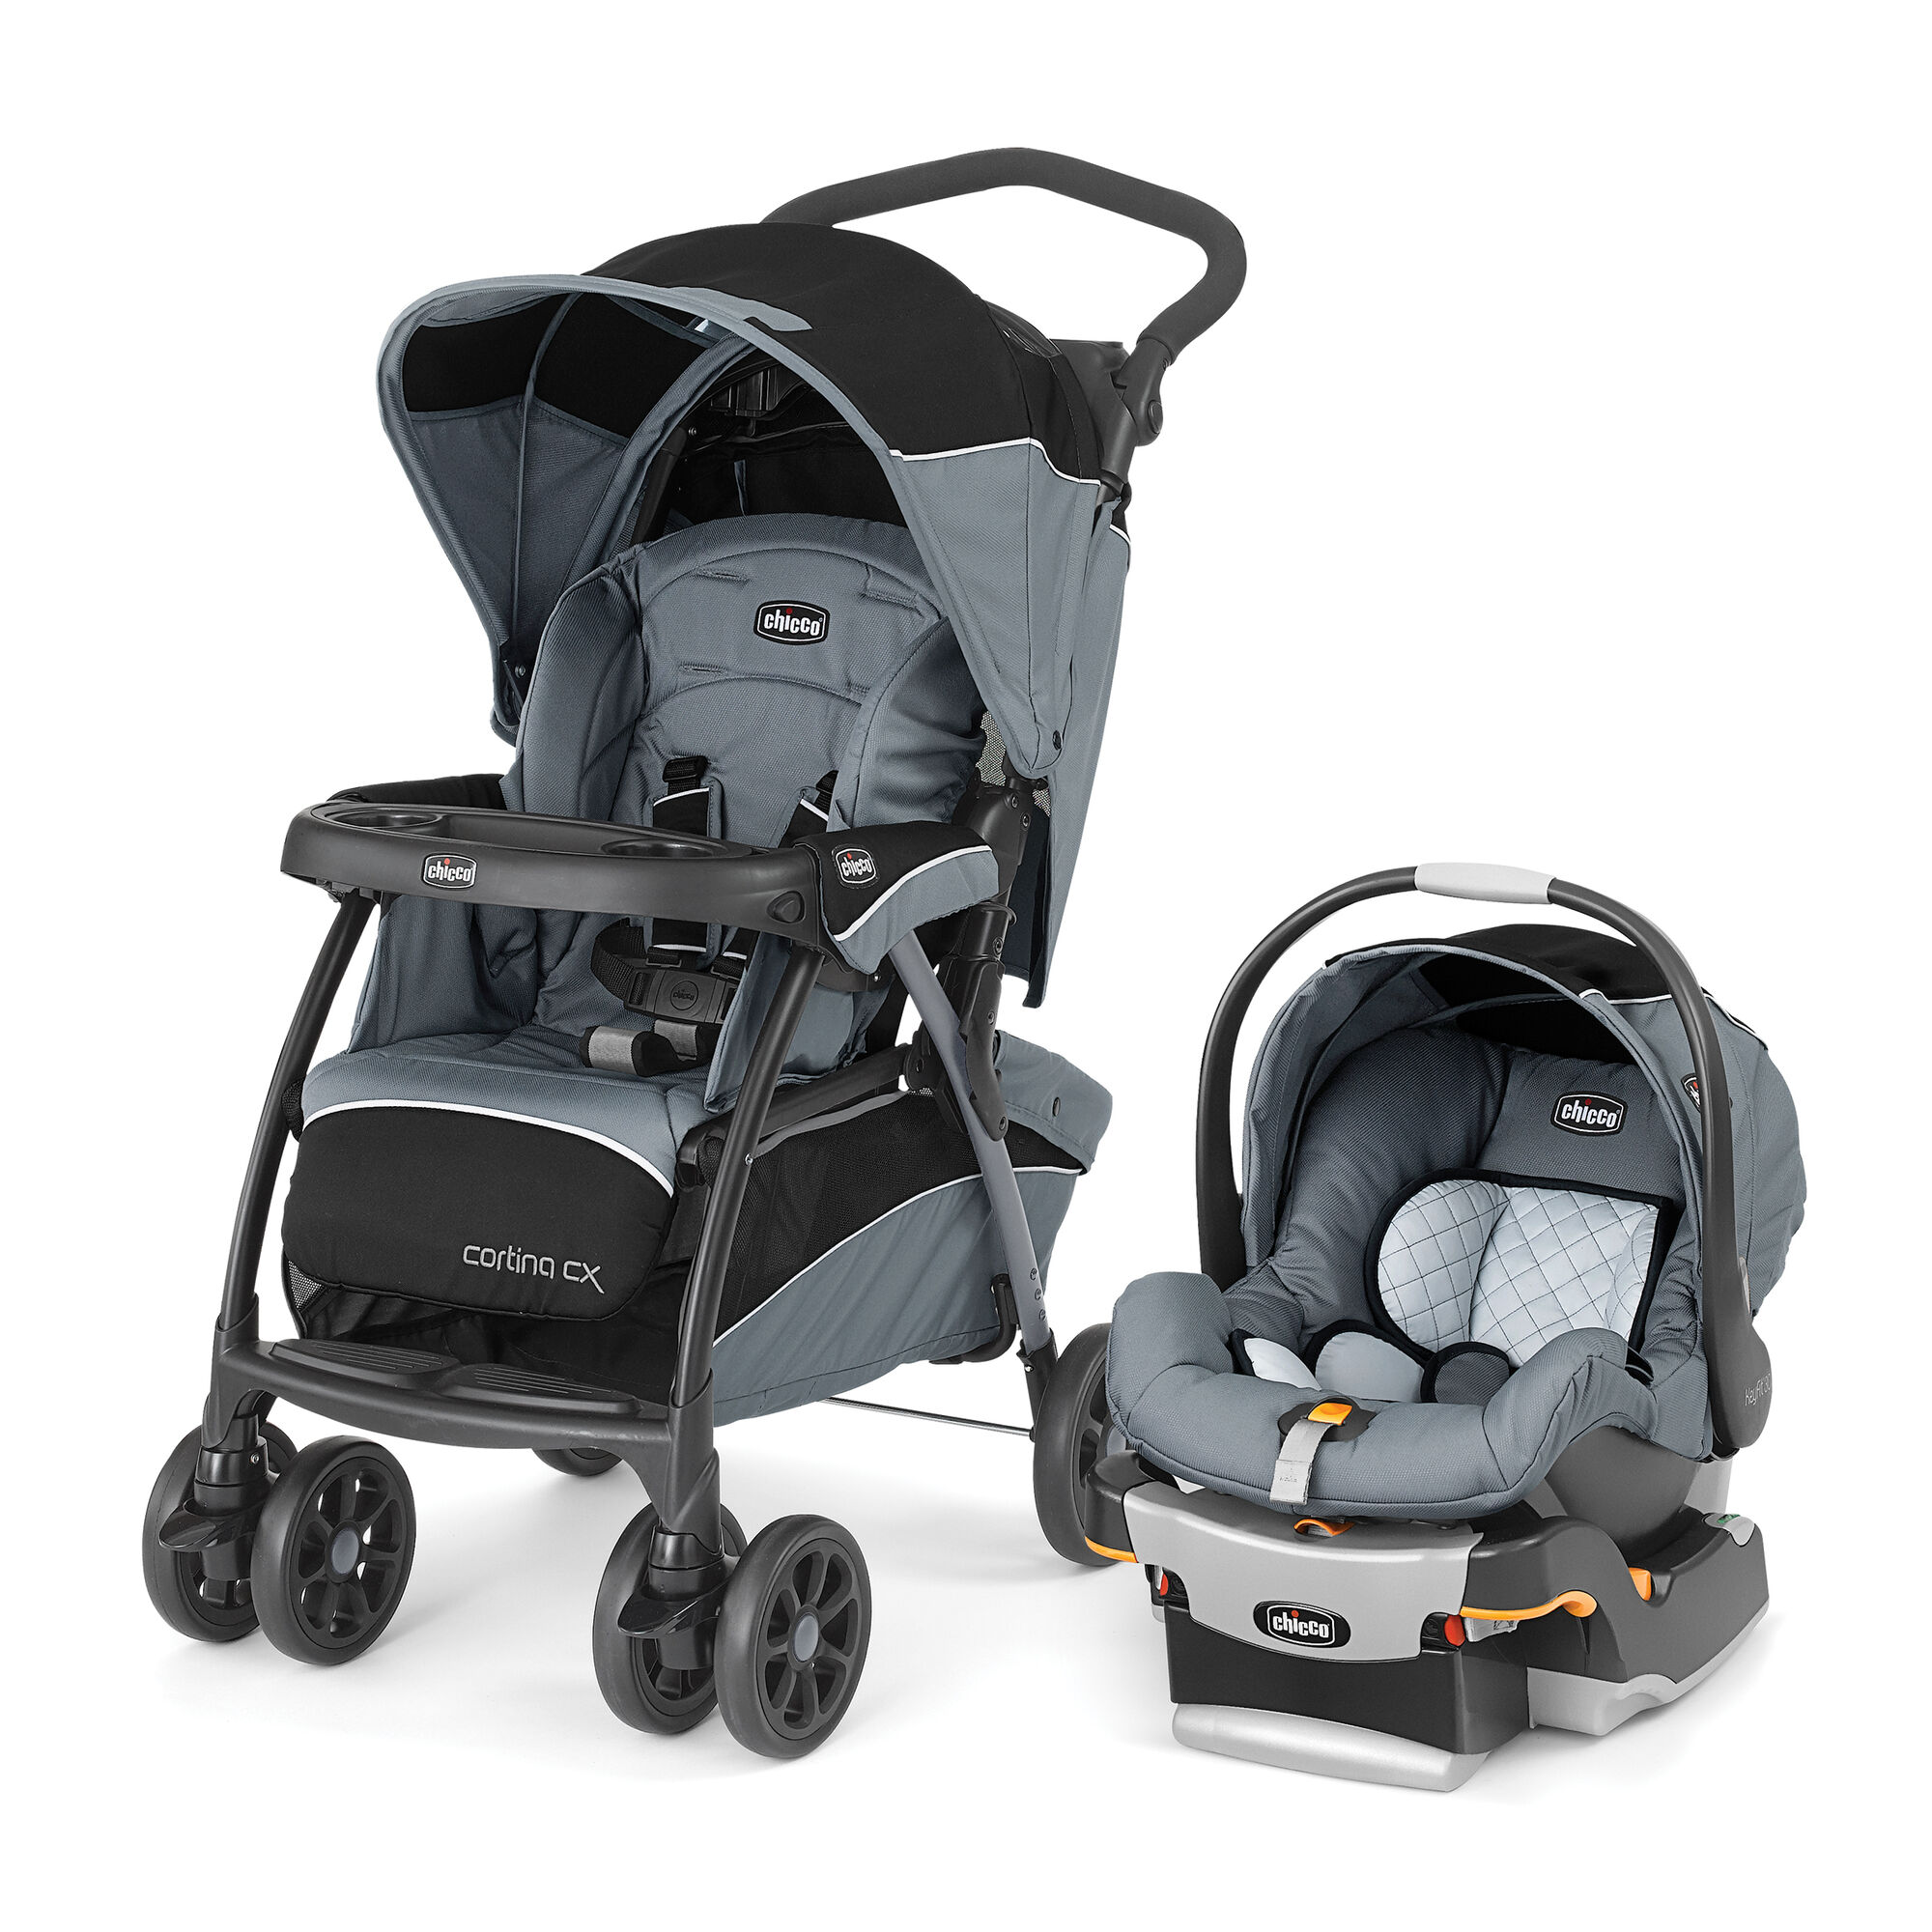 Rss. Founded in , Chicco currently has been a large retailer of children's products and present in over countries in the world. The company provides a huge selection of products for babies and moms, including gear, toys, apparel, feeding products, foods, relax products, shoes, and many more.